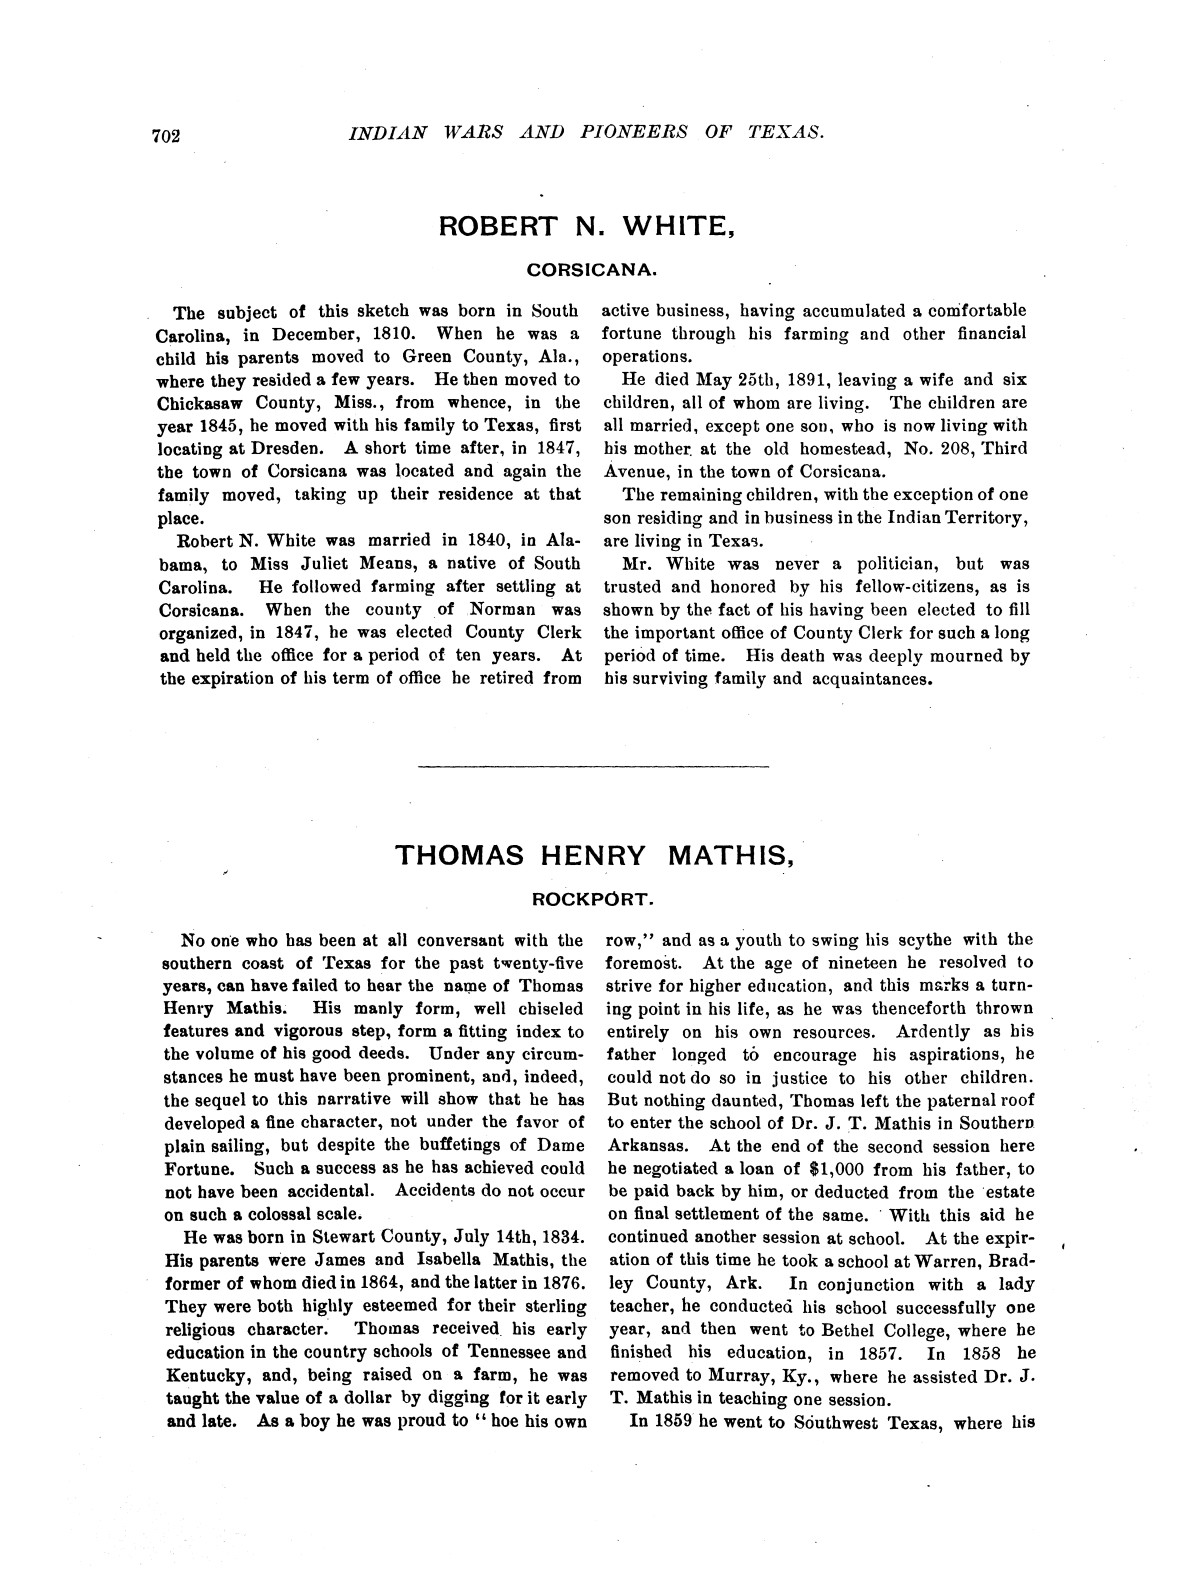 Indian wars and pioneers of Texas / by John Henry Brown.                                                                                                      [Sequence #]: 813 of 894